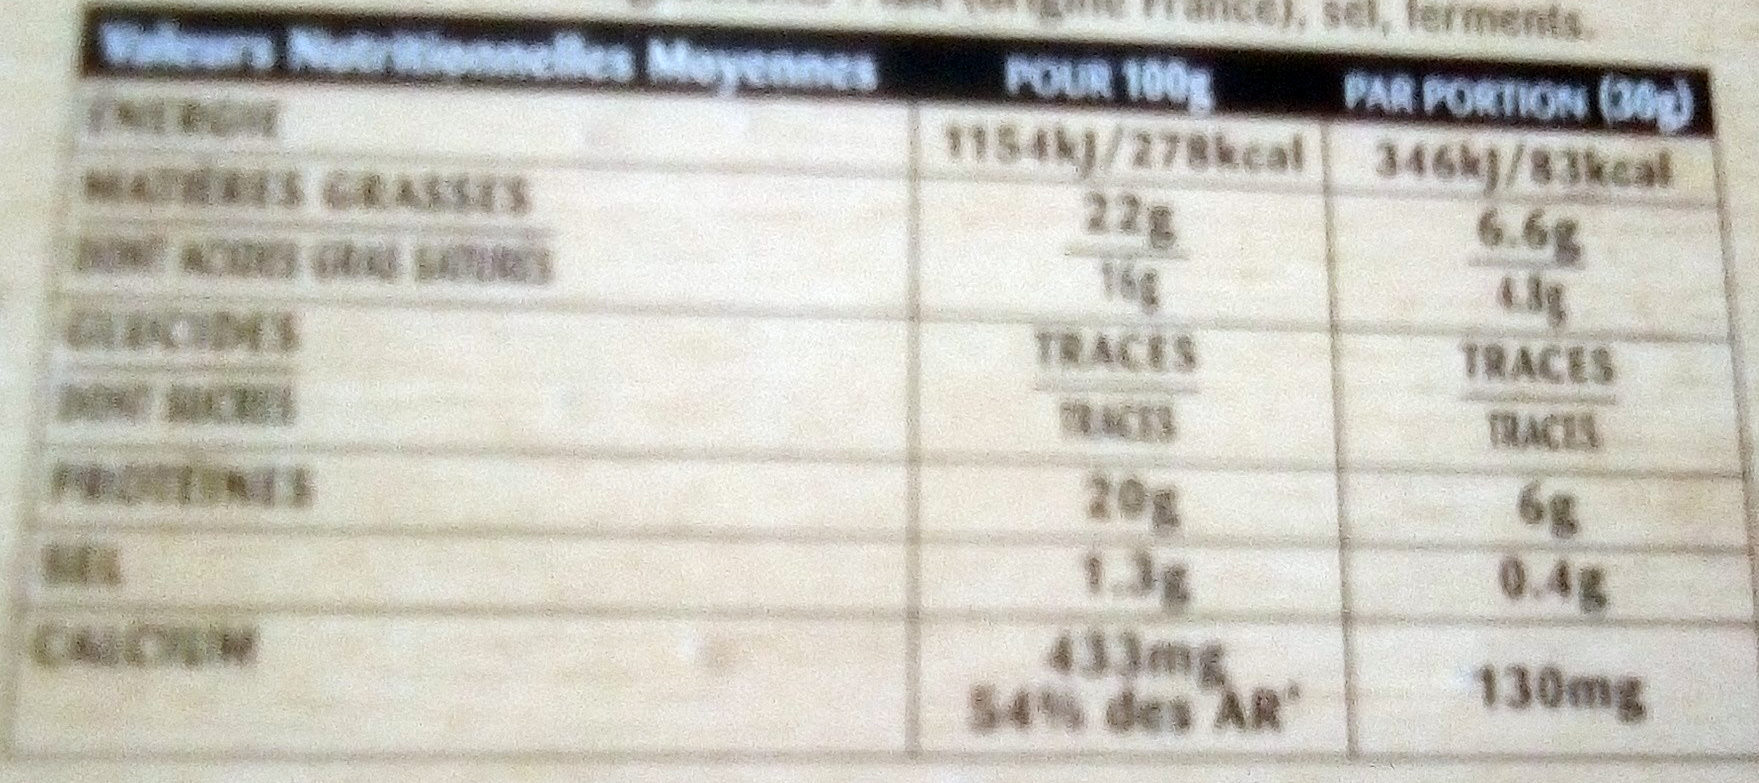 Camembert de campagne - Nutrition facts